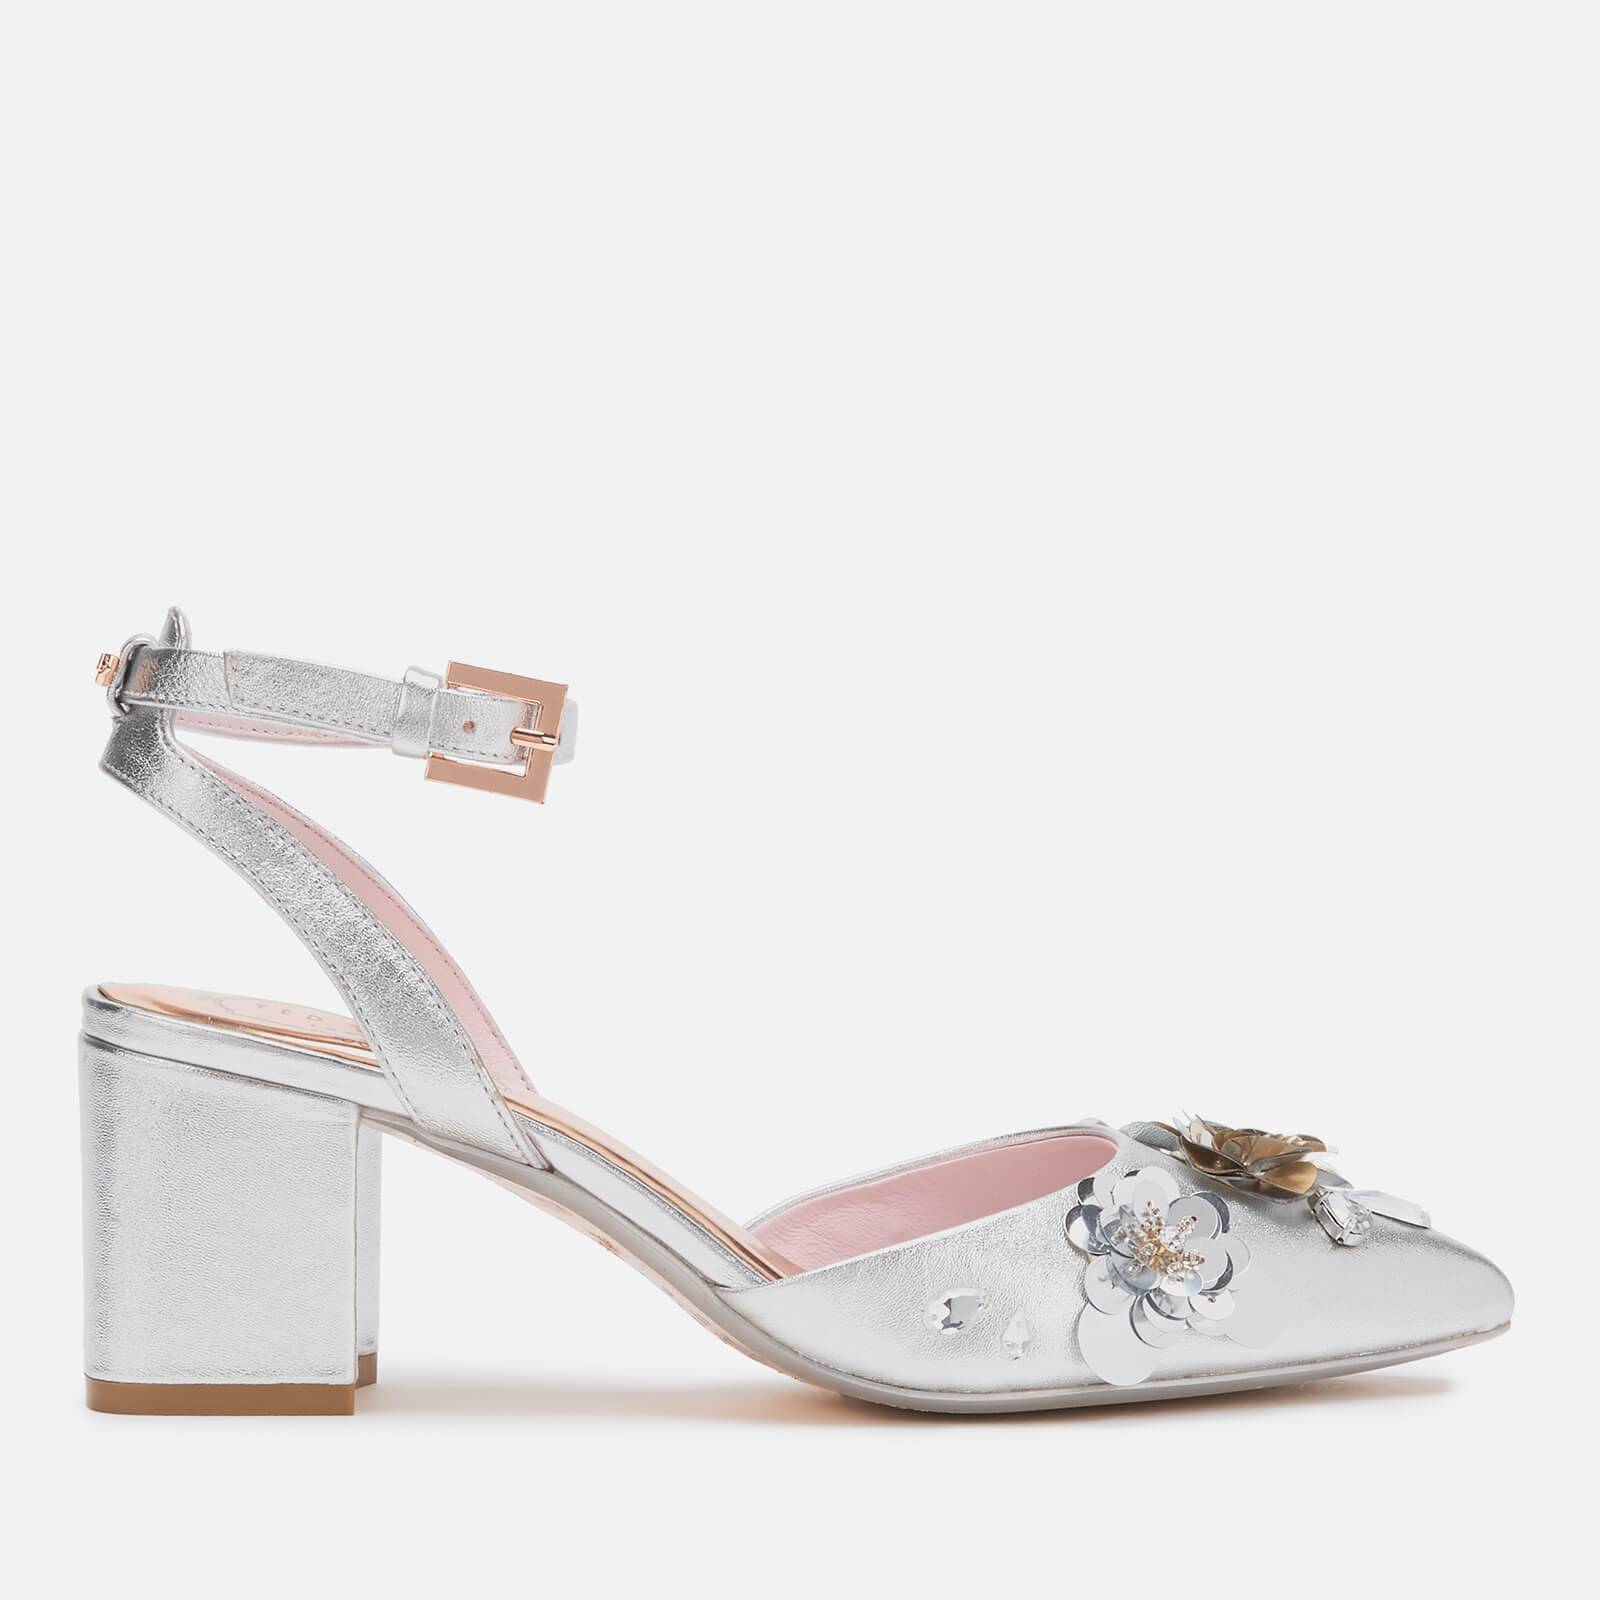 Ted Baker Women's Odesca Floral Embellished Block Heeled Sandals - Silver - UK 6